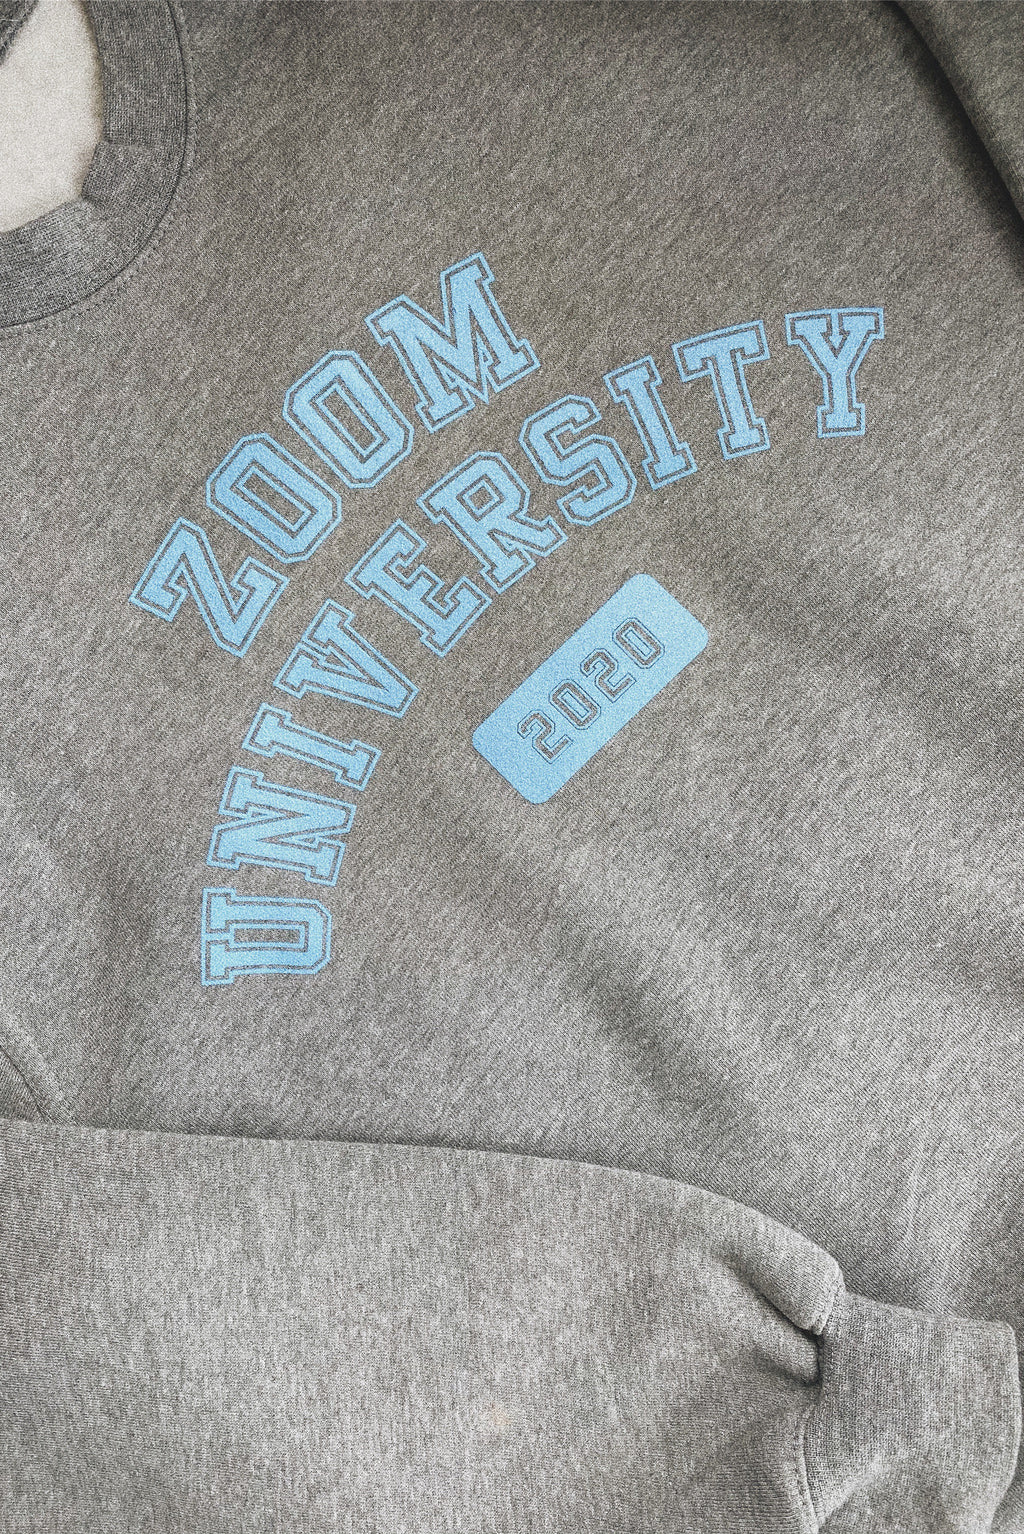 Zoom University Crewneck - Hype and Vice